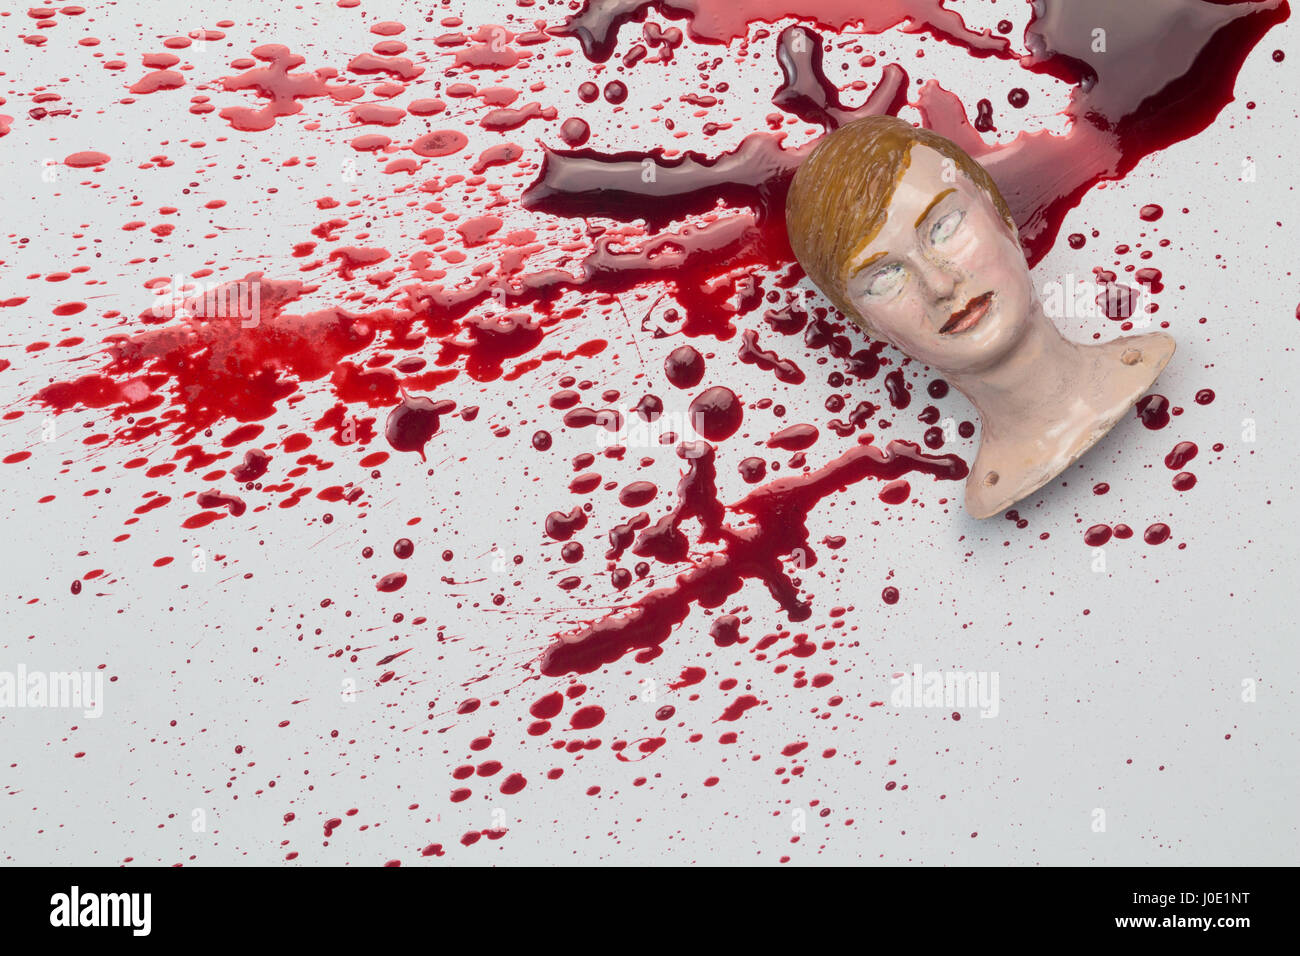 Adult woman doll head on blood spattered white background - Abstract concept  of violence against a woman - Stock Image